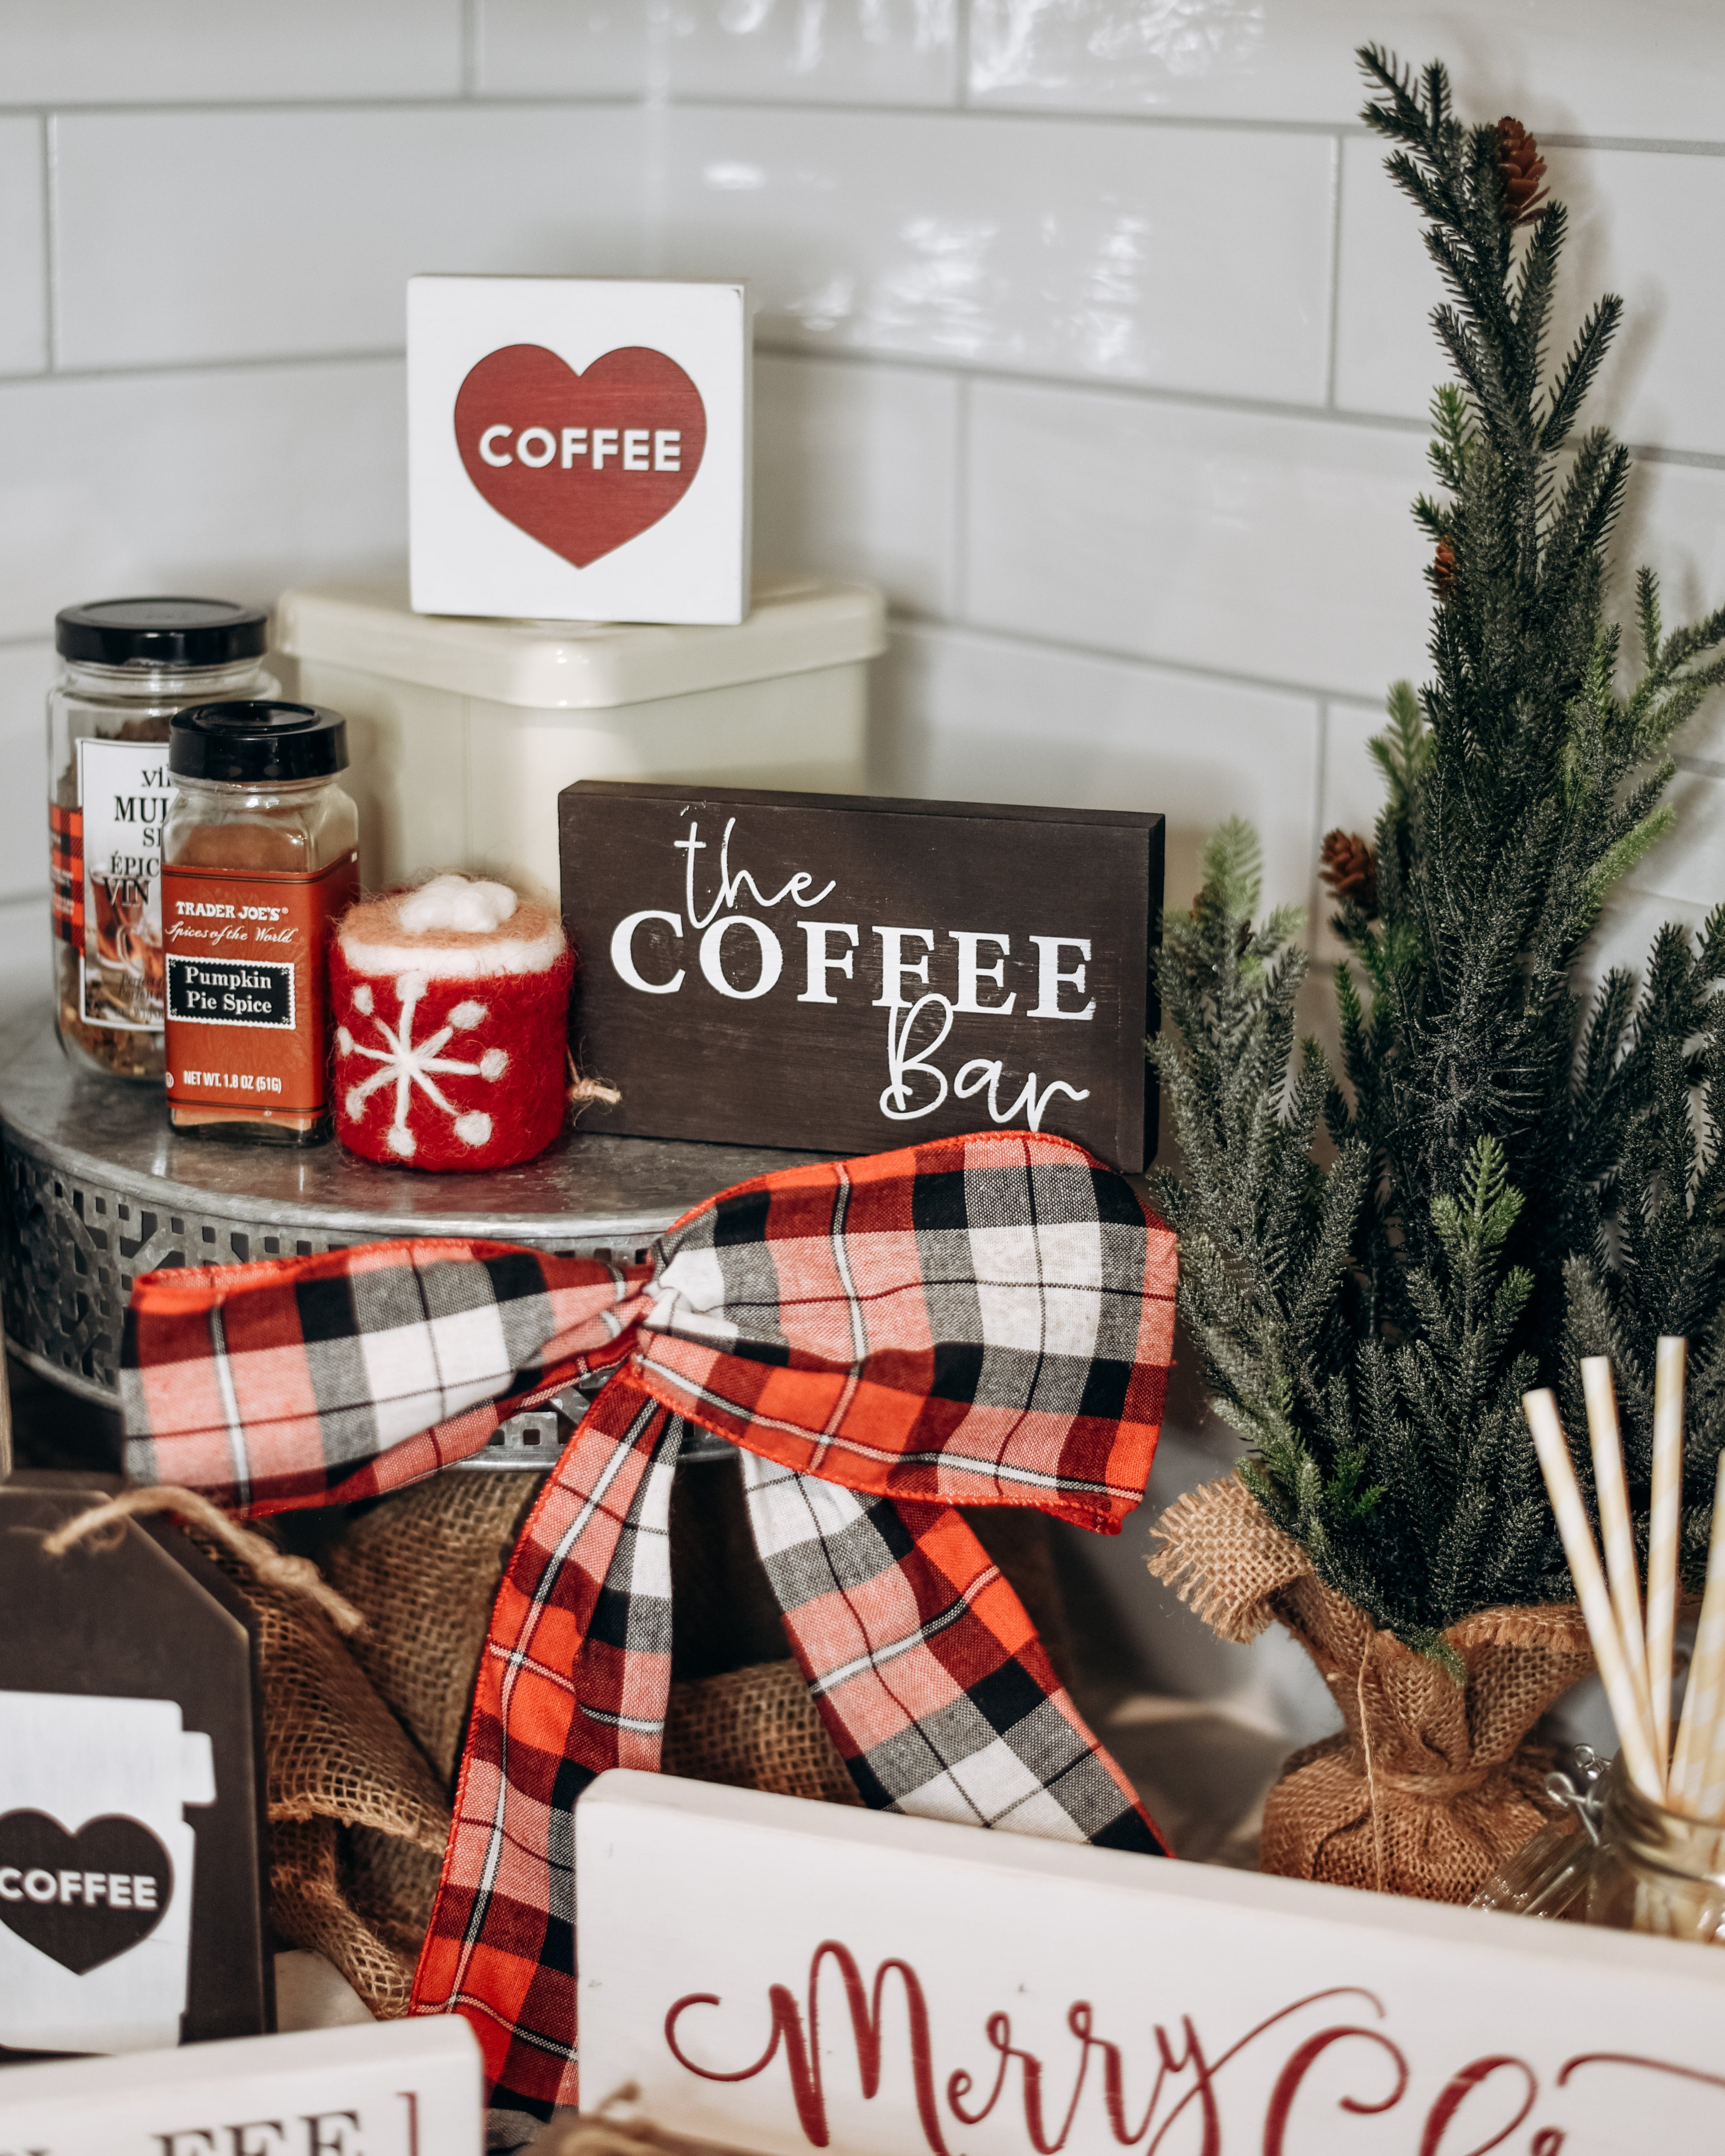 Create A Holiday Inspired Coffee Bar at Home - Homeworks Etc.